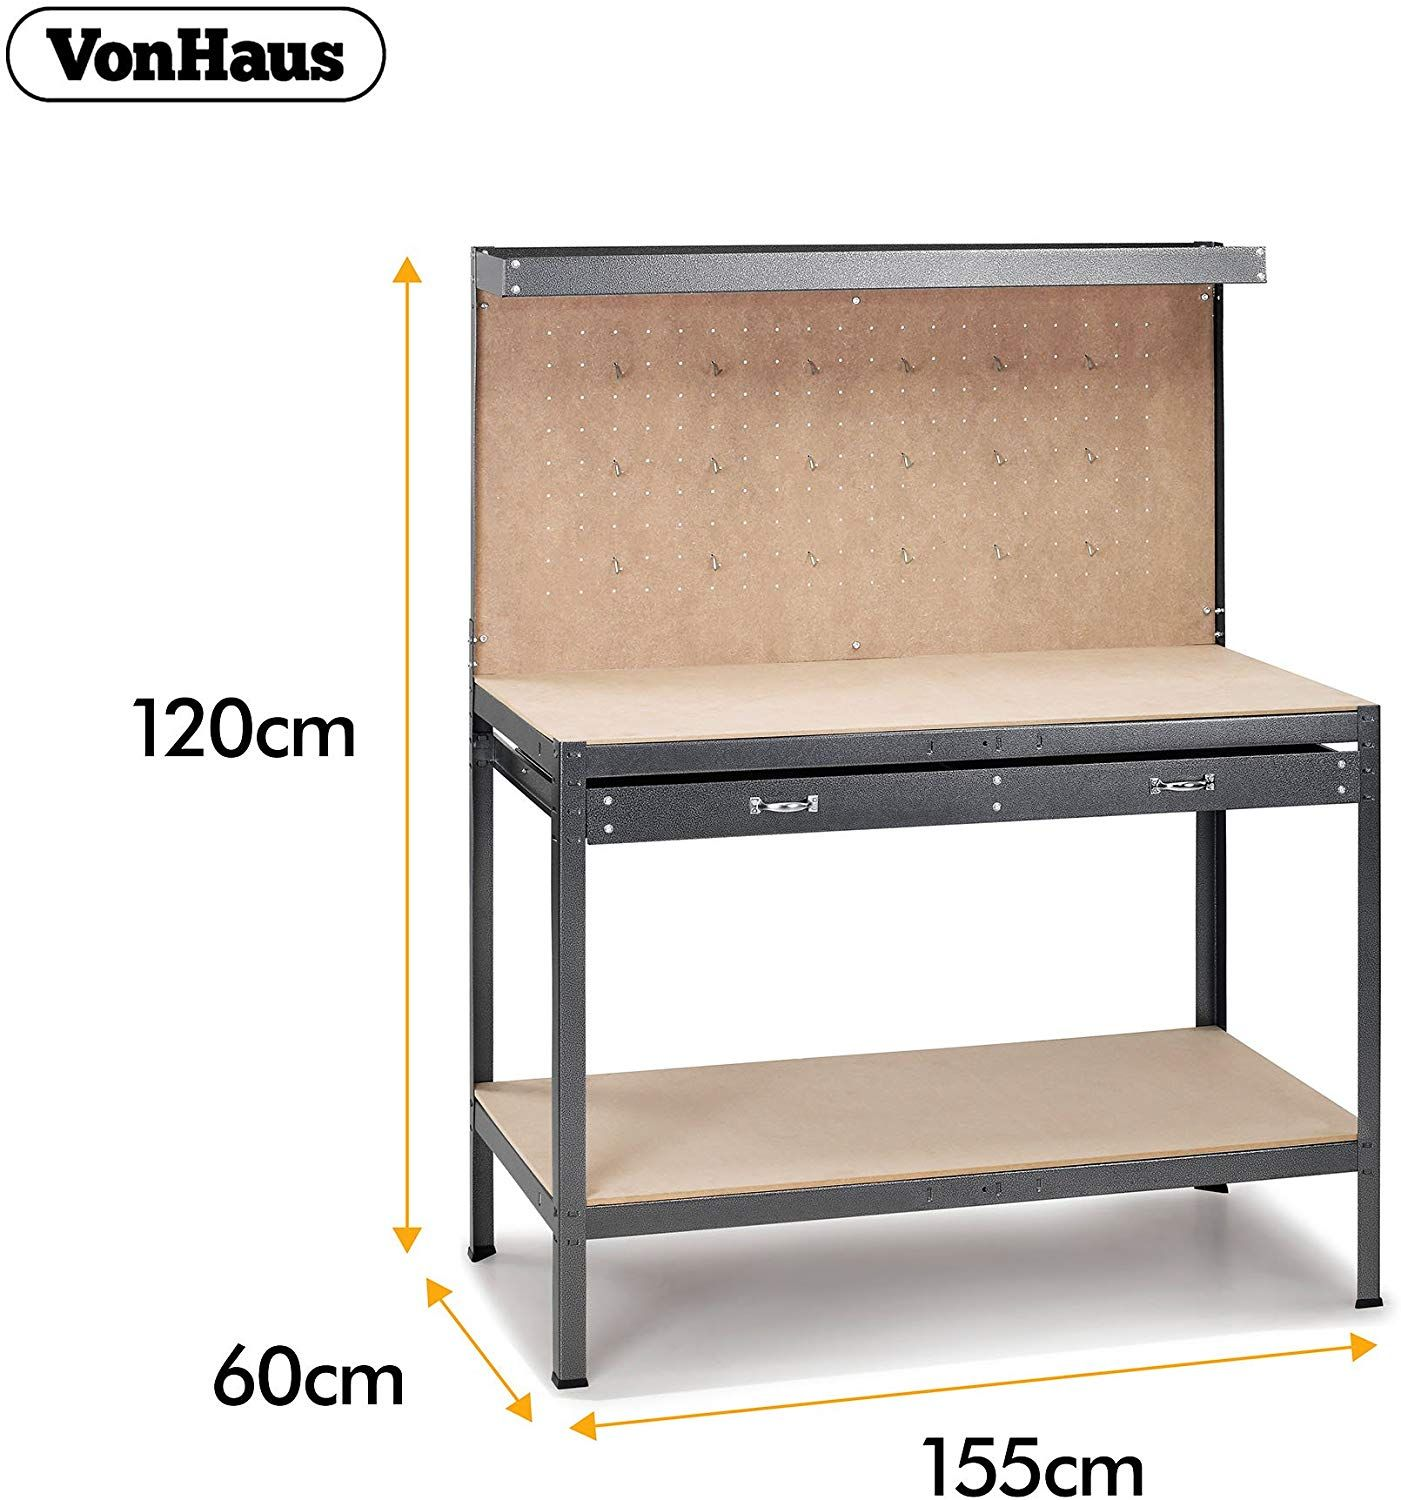 Vonhaus Garage Workbench Pegboard Heavy Duty Reinforced Steel With Storage Drawer Shelf Grey Hammered Texture Fin Drawer Shelves Work Table Storage Drawers